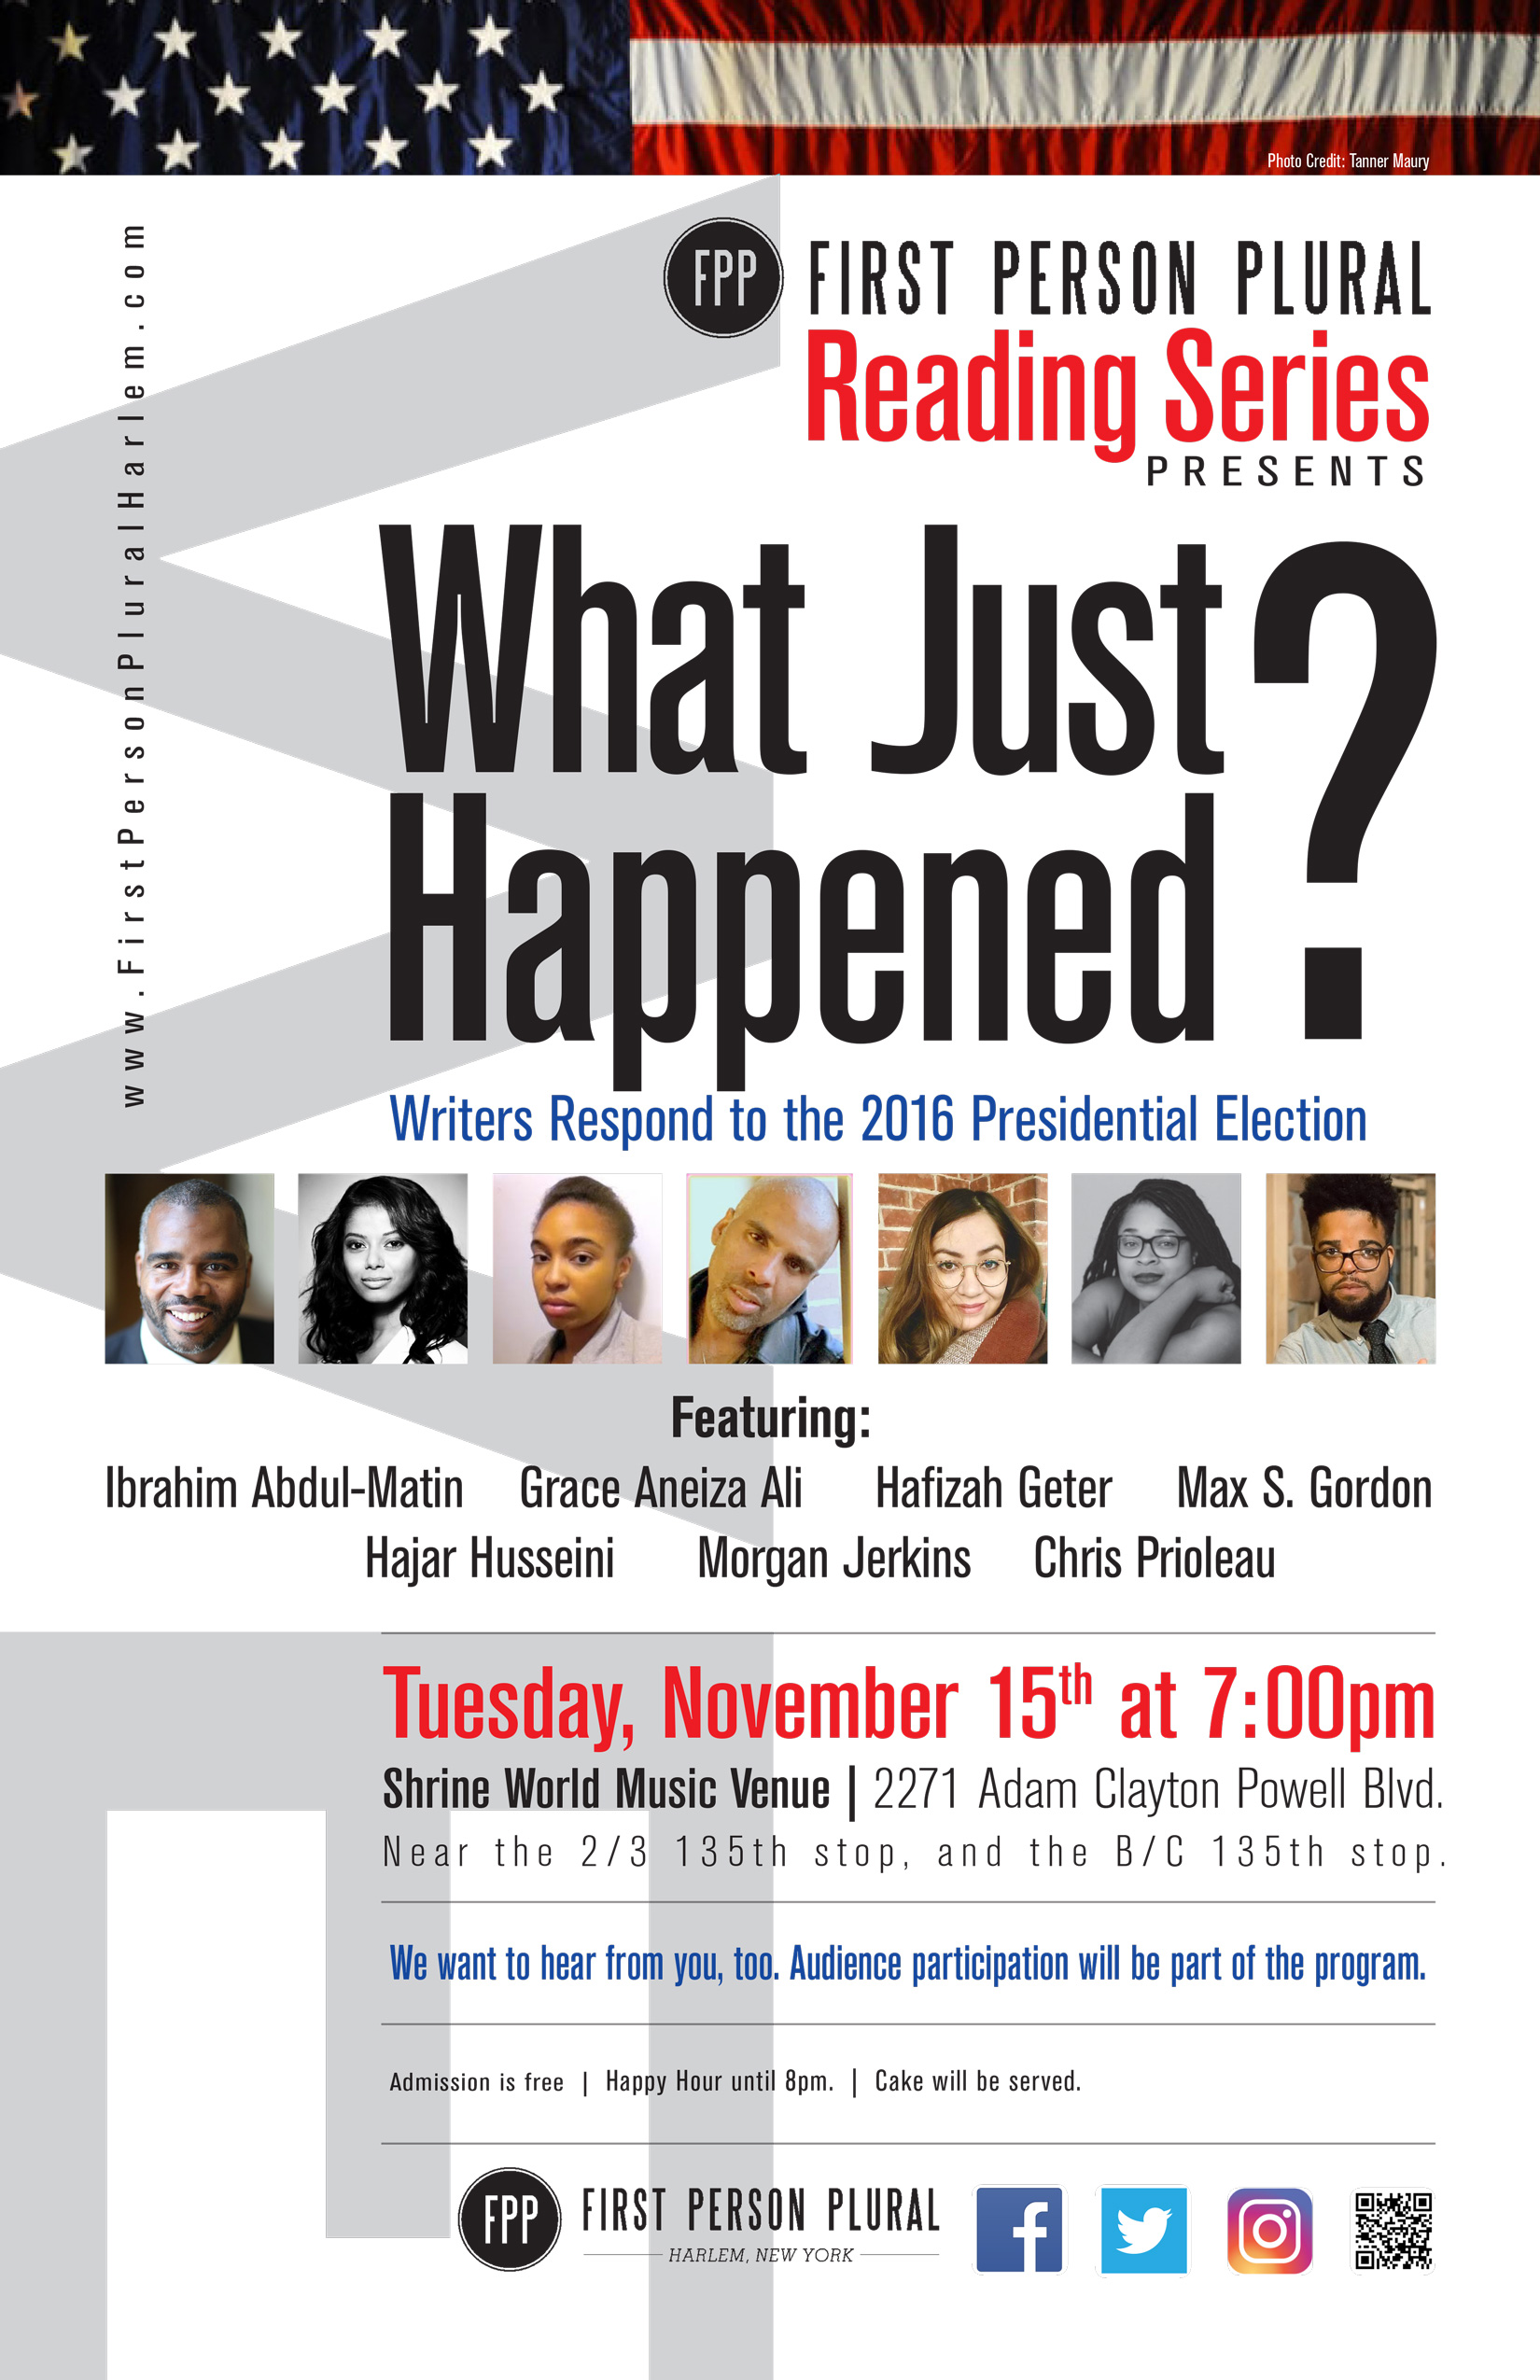 Harlem | First Person Plural Reading Series | Page 2